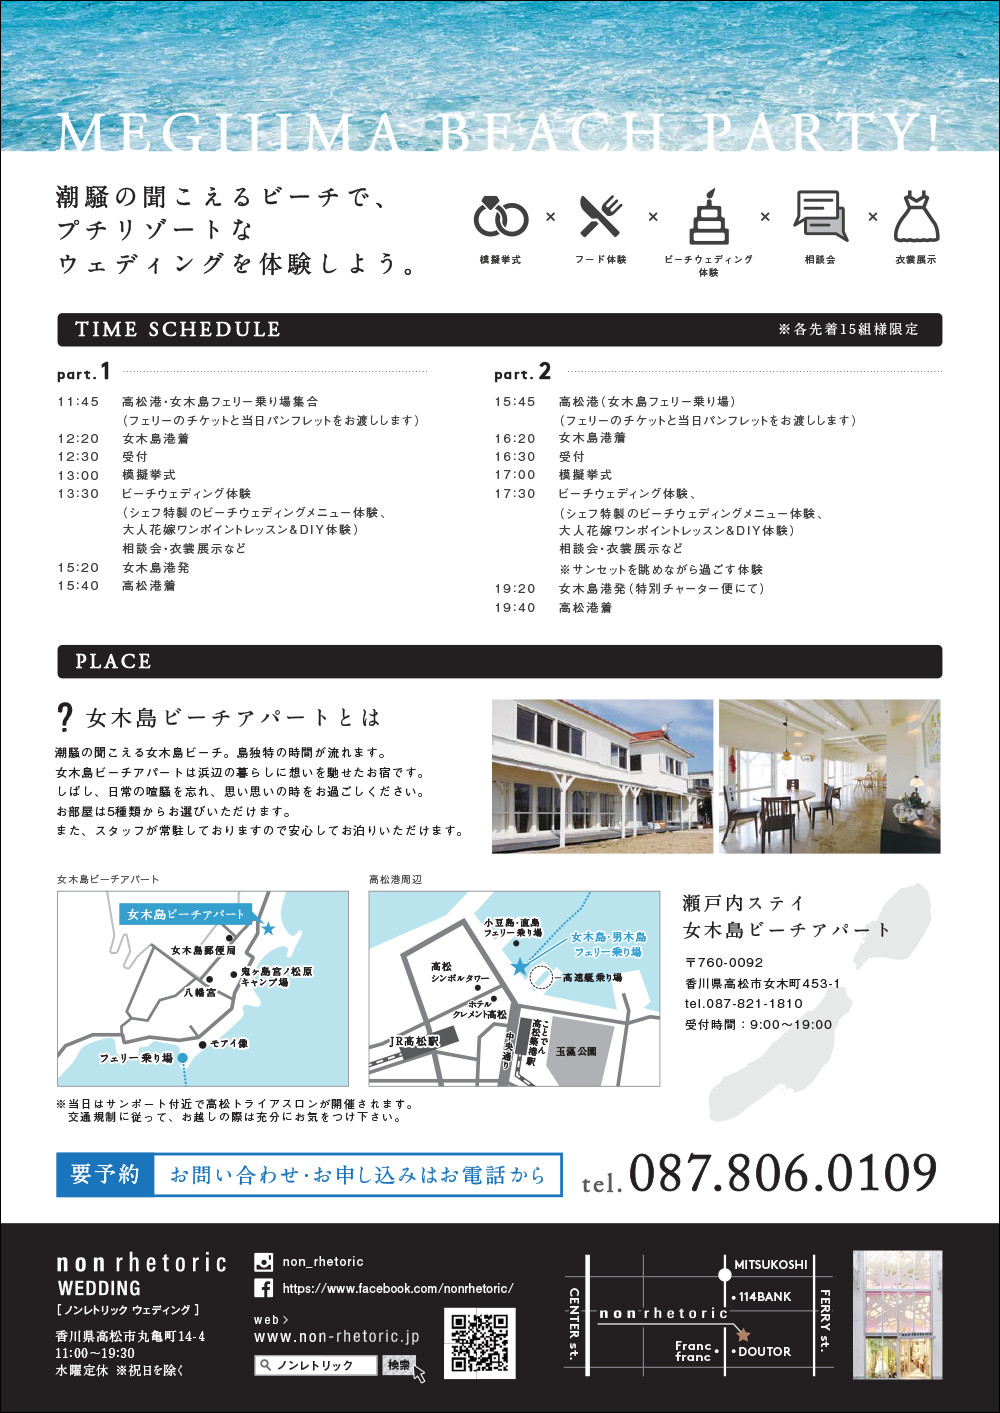 MEGIJIMA BEACH WEDDING FAIR